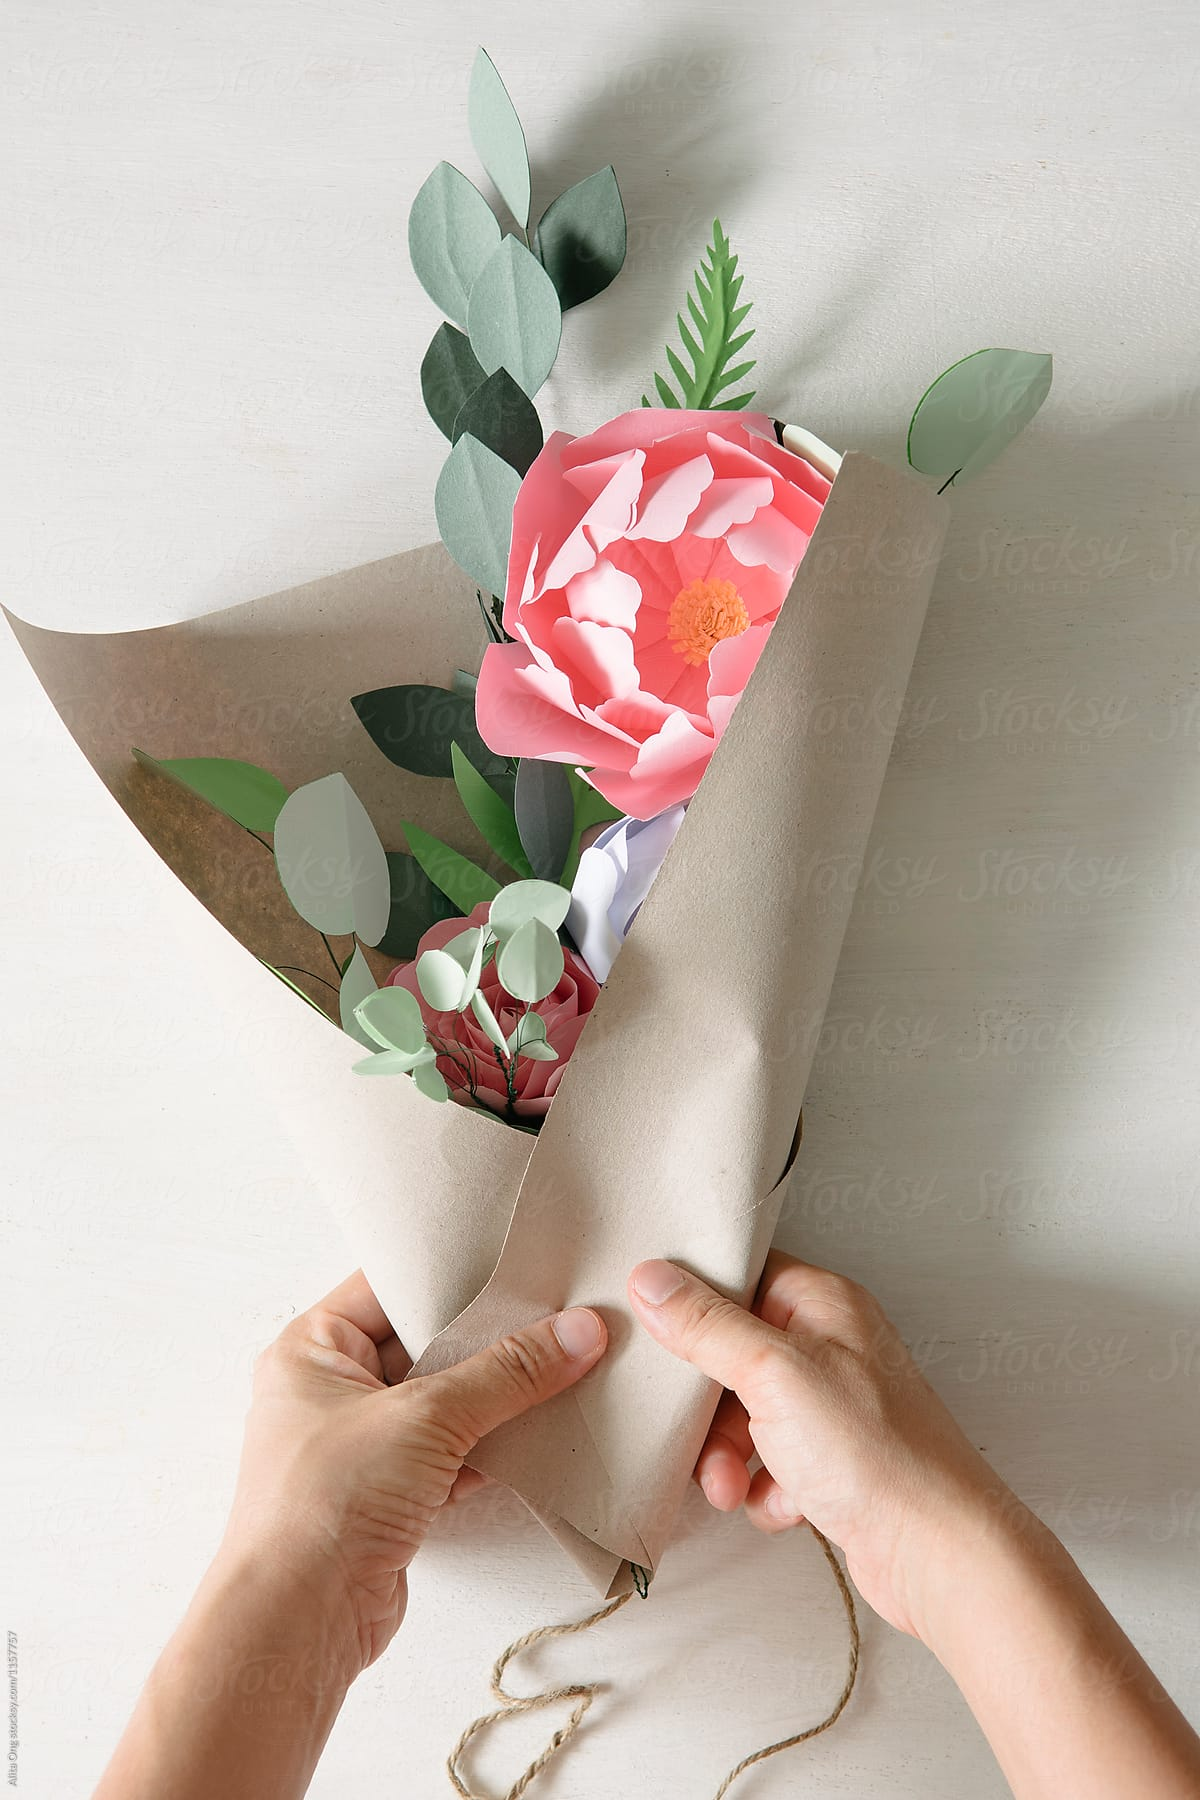 Wrapping Paper Flowers Bouquet Stocksy United